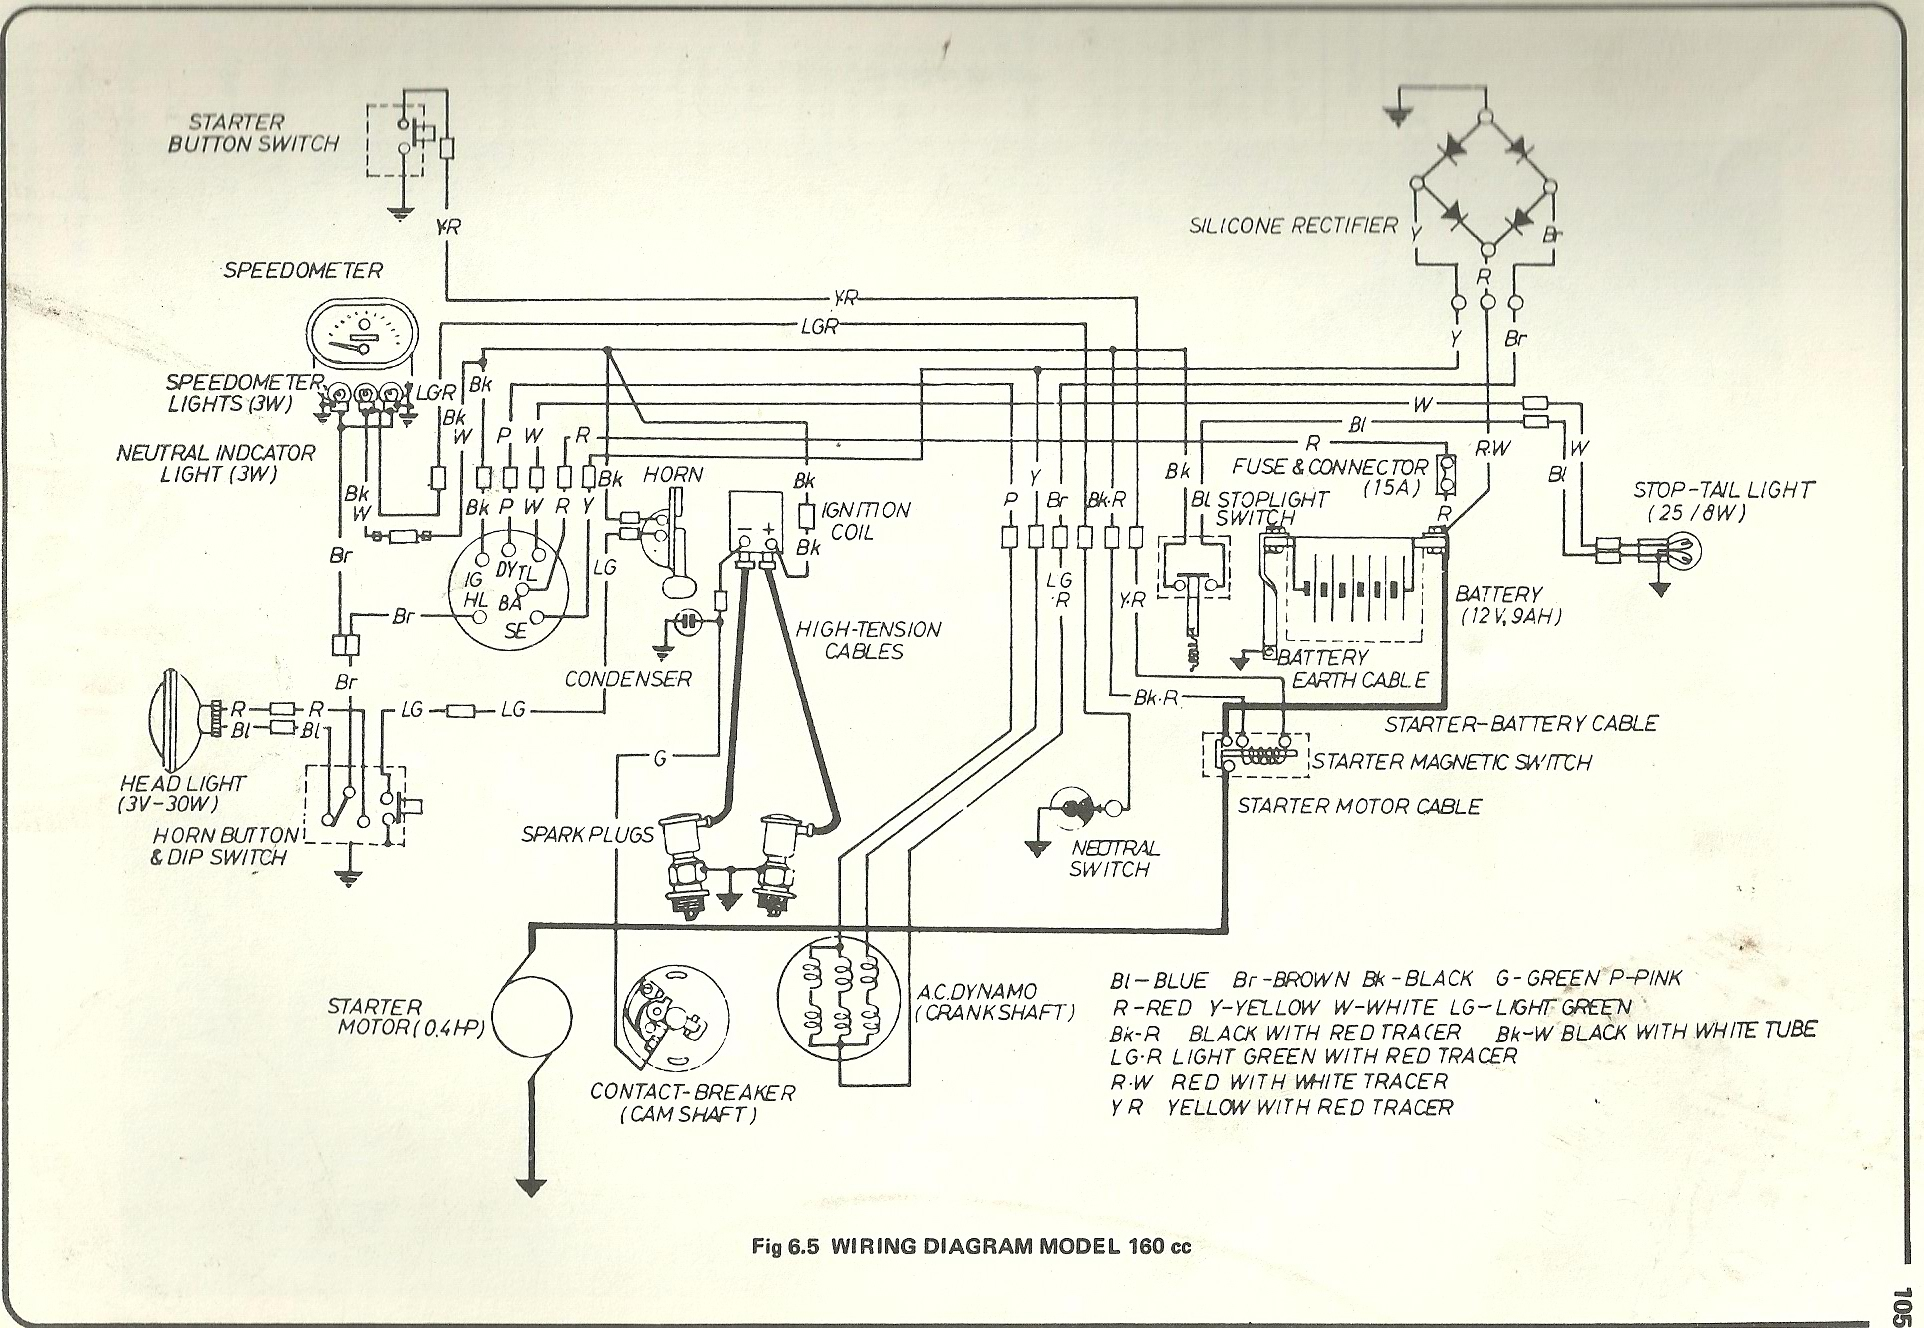 hight resolution of 1976 cb 750 wiring diagram wiring diagramhonda cb750 wiring schematic wiring diagramhonda cb750 wiring schematic